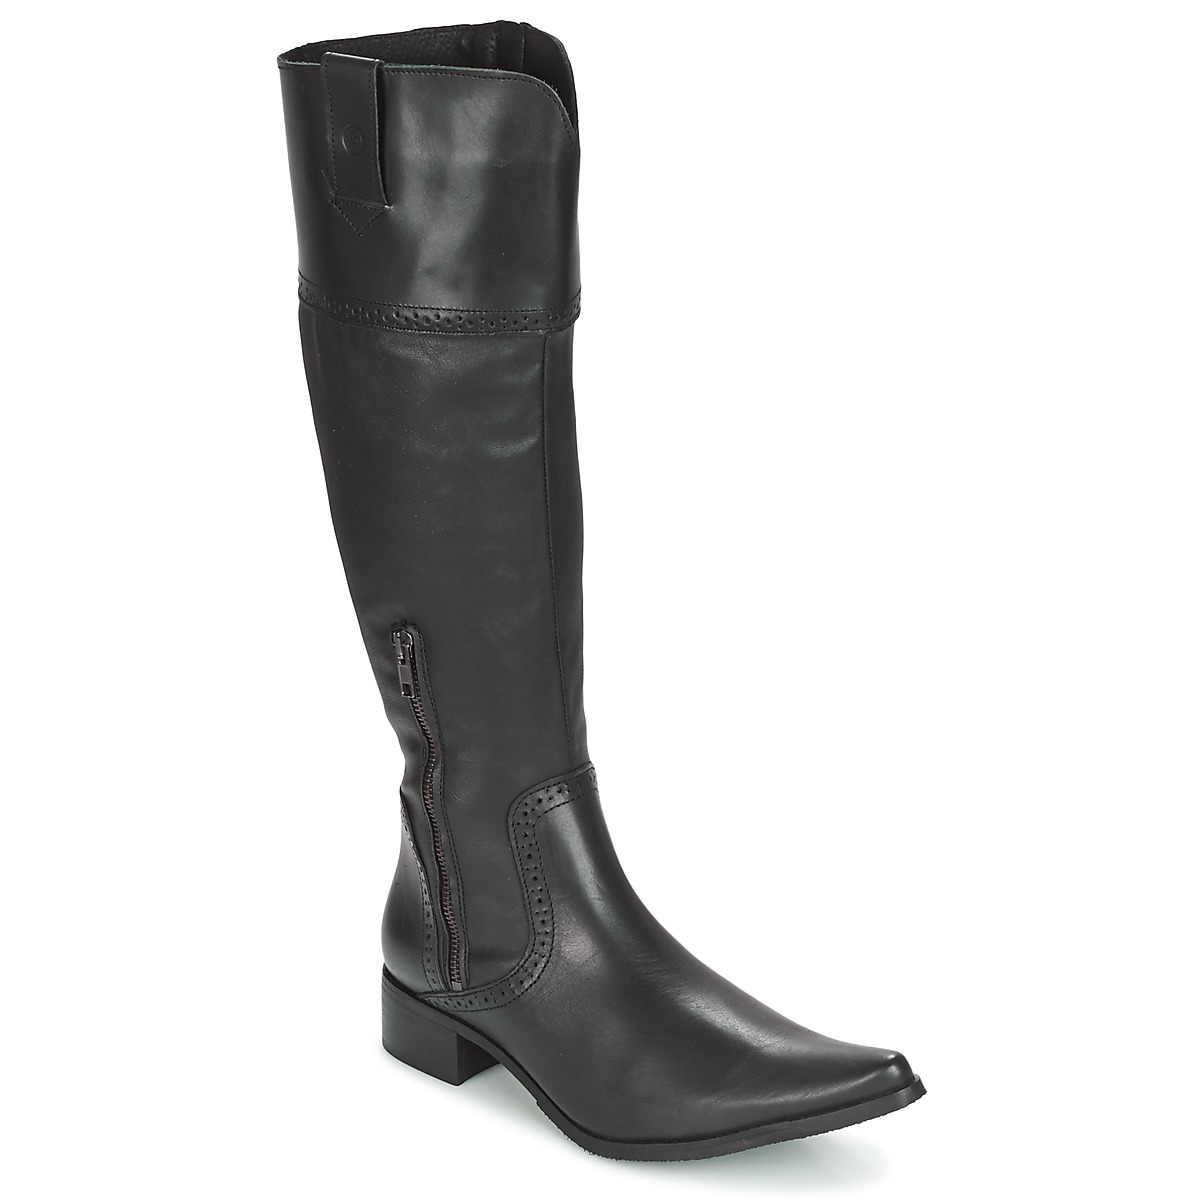 Botte ville BT London RIOKA Noir